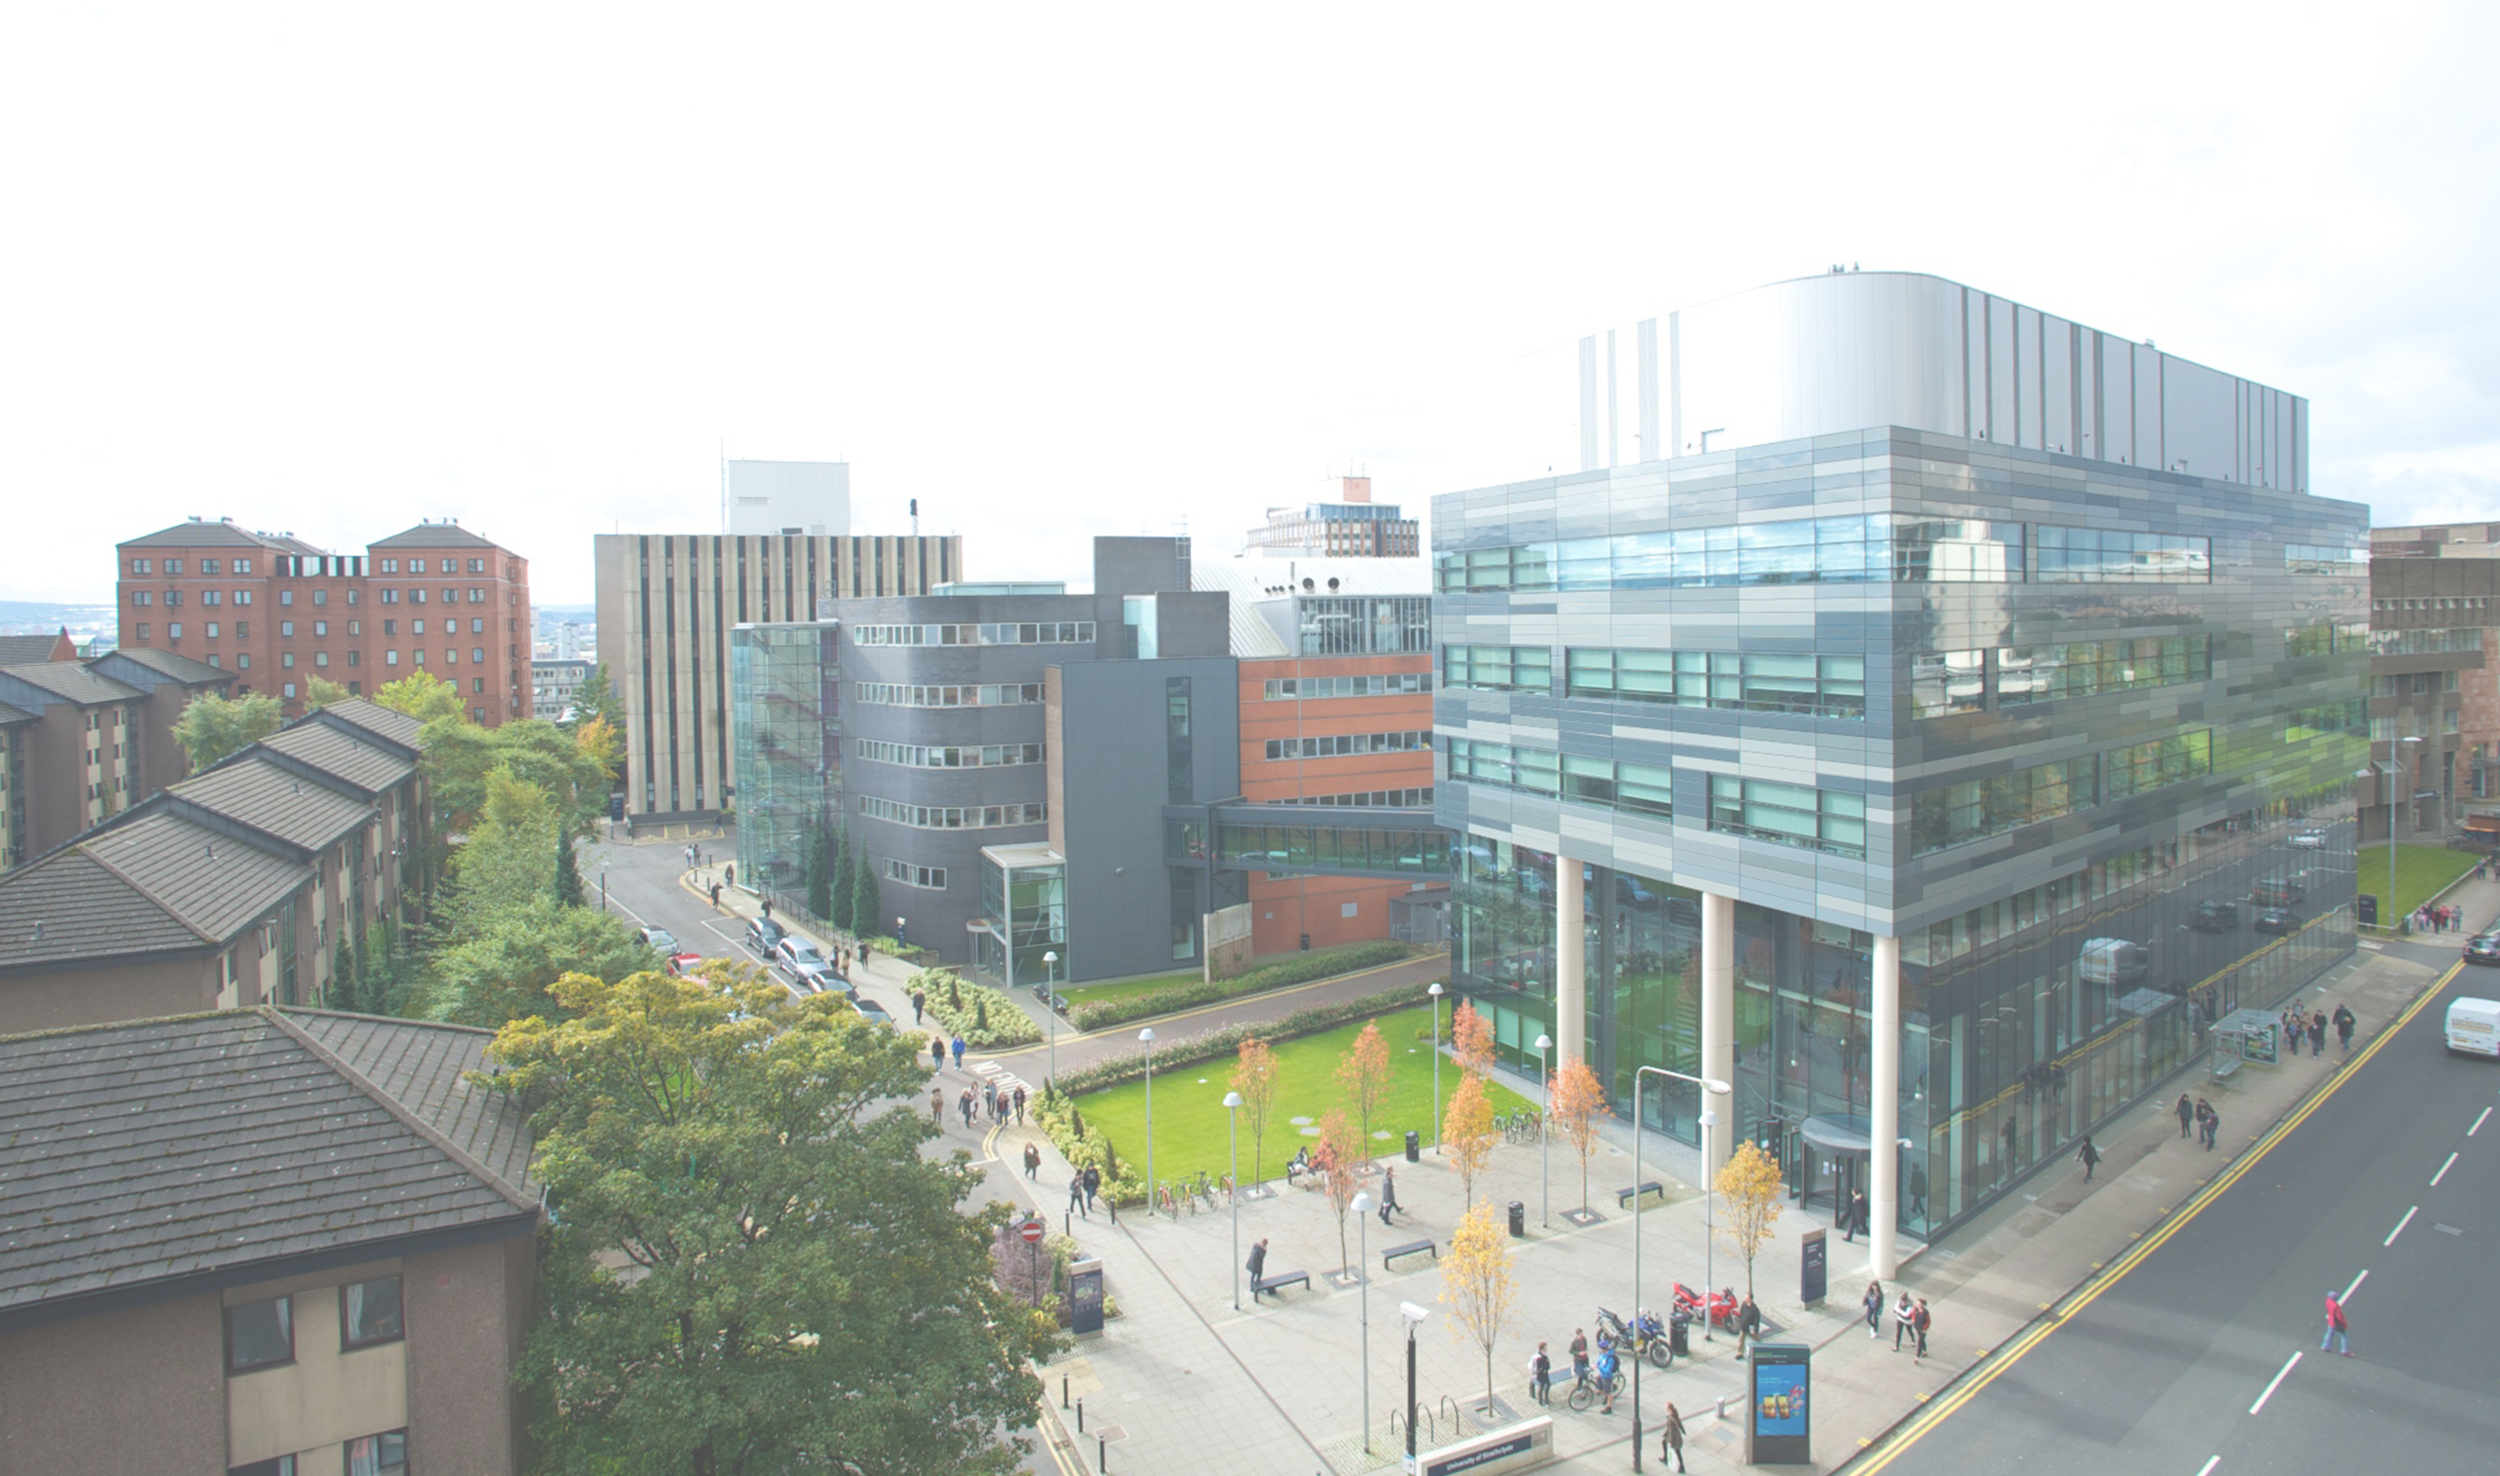 University of Strathclyde in Glasgow, Scotland